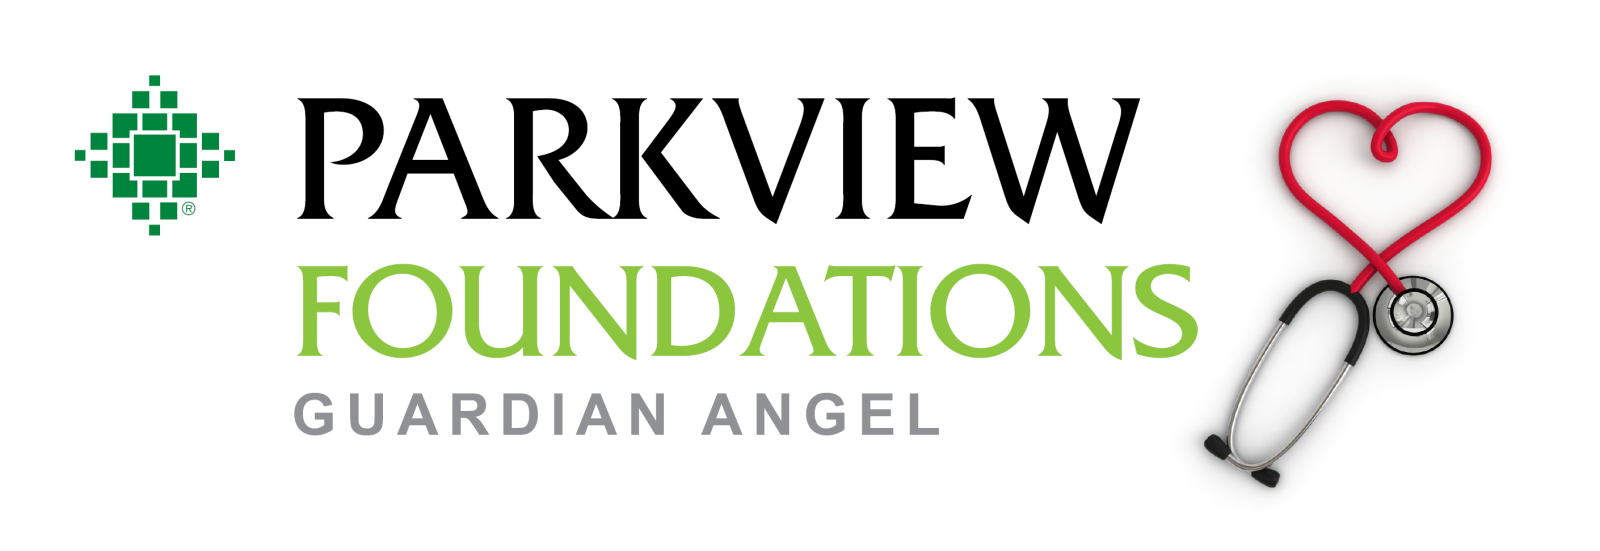 Parkview Foundations Guardian Angel